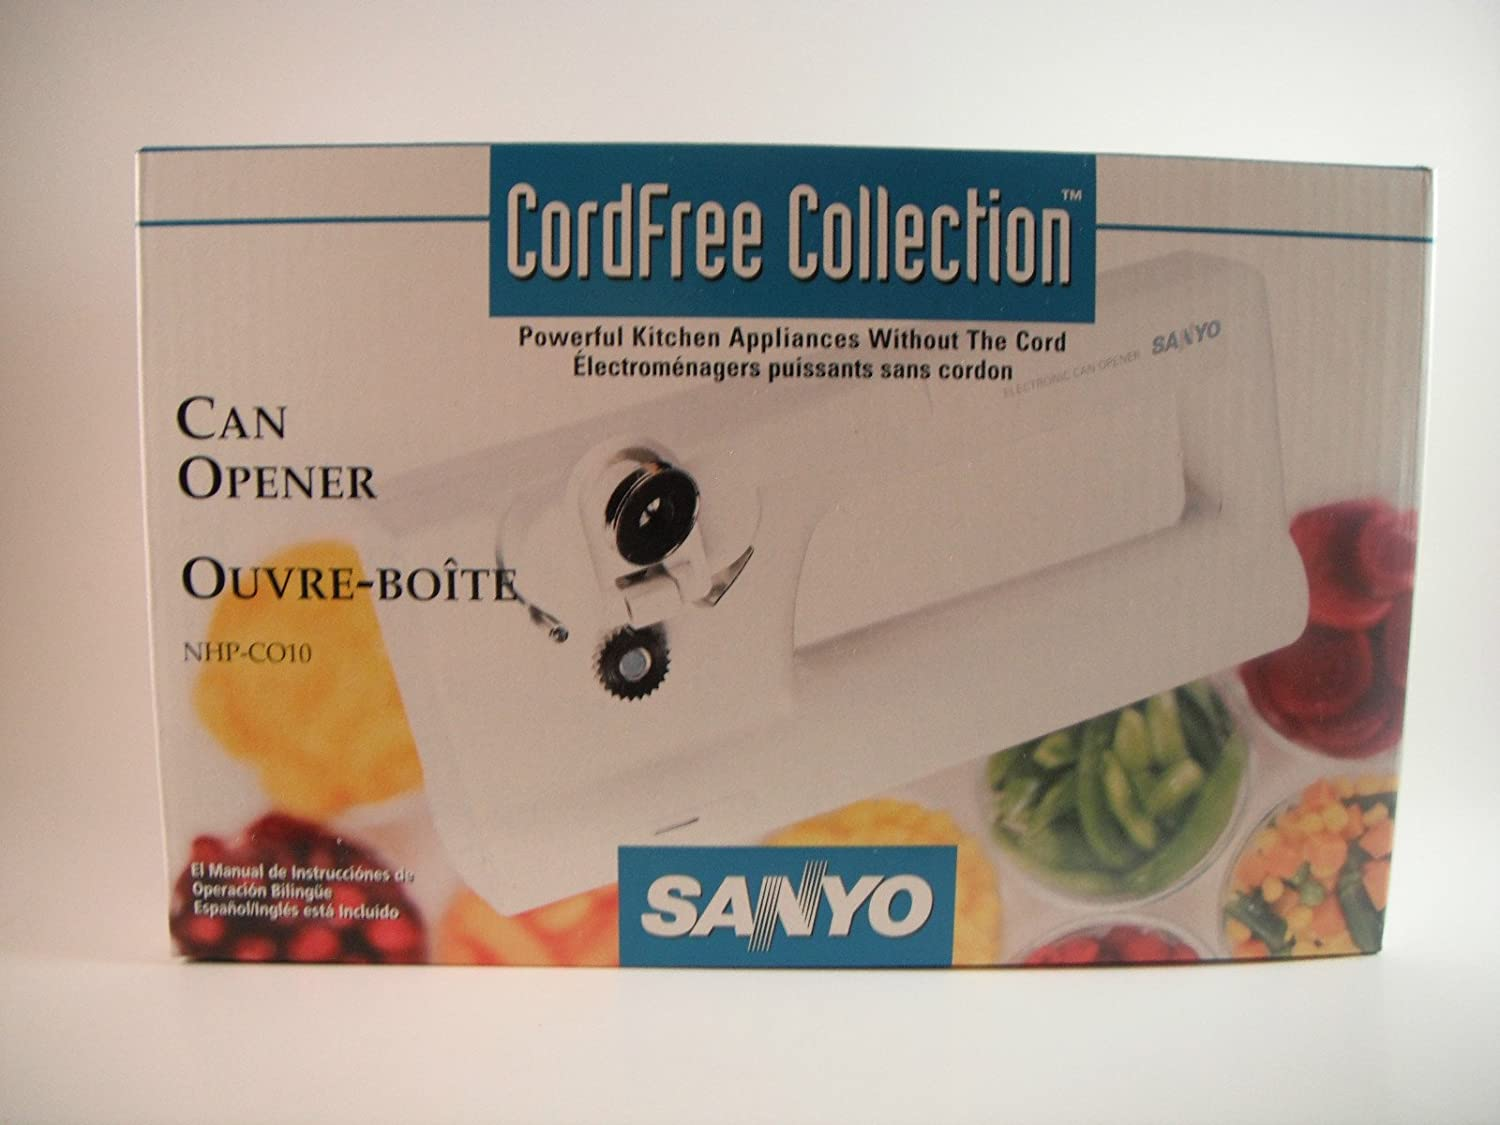 SANYO CORDFREE COLLECTION CAN OPENER